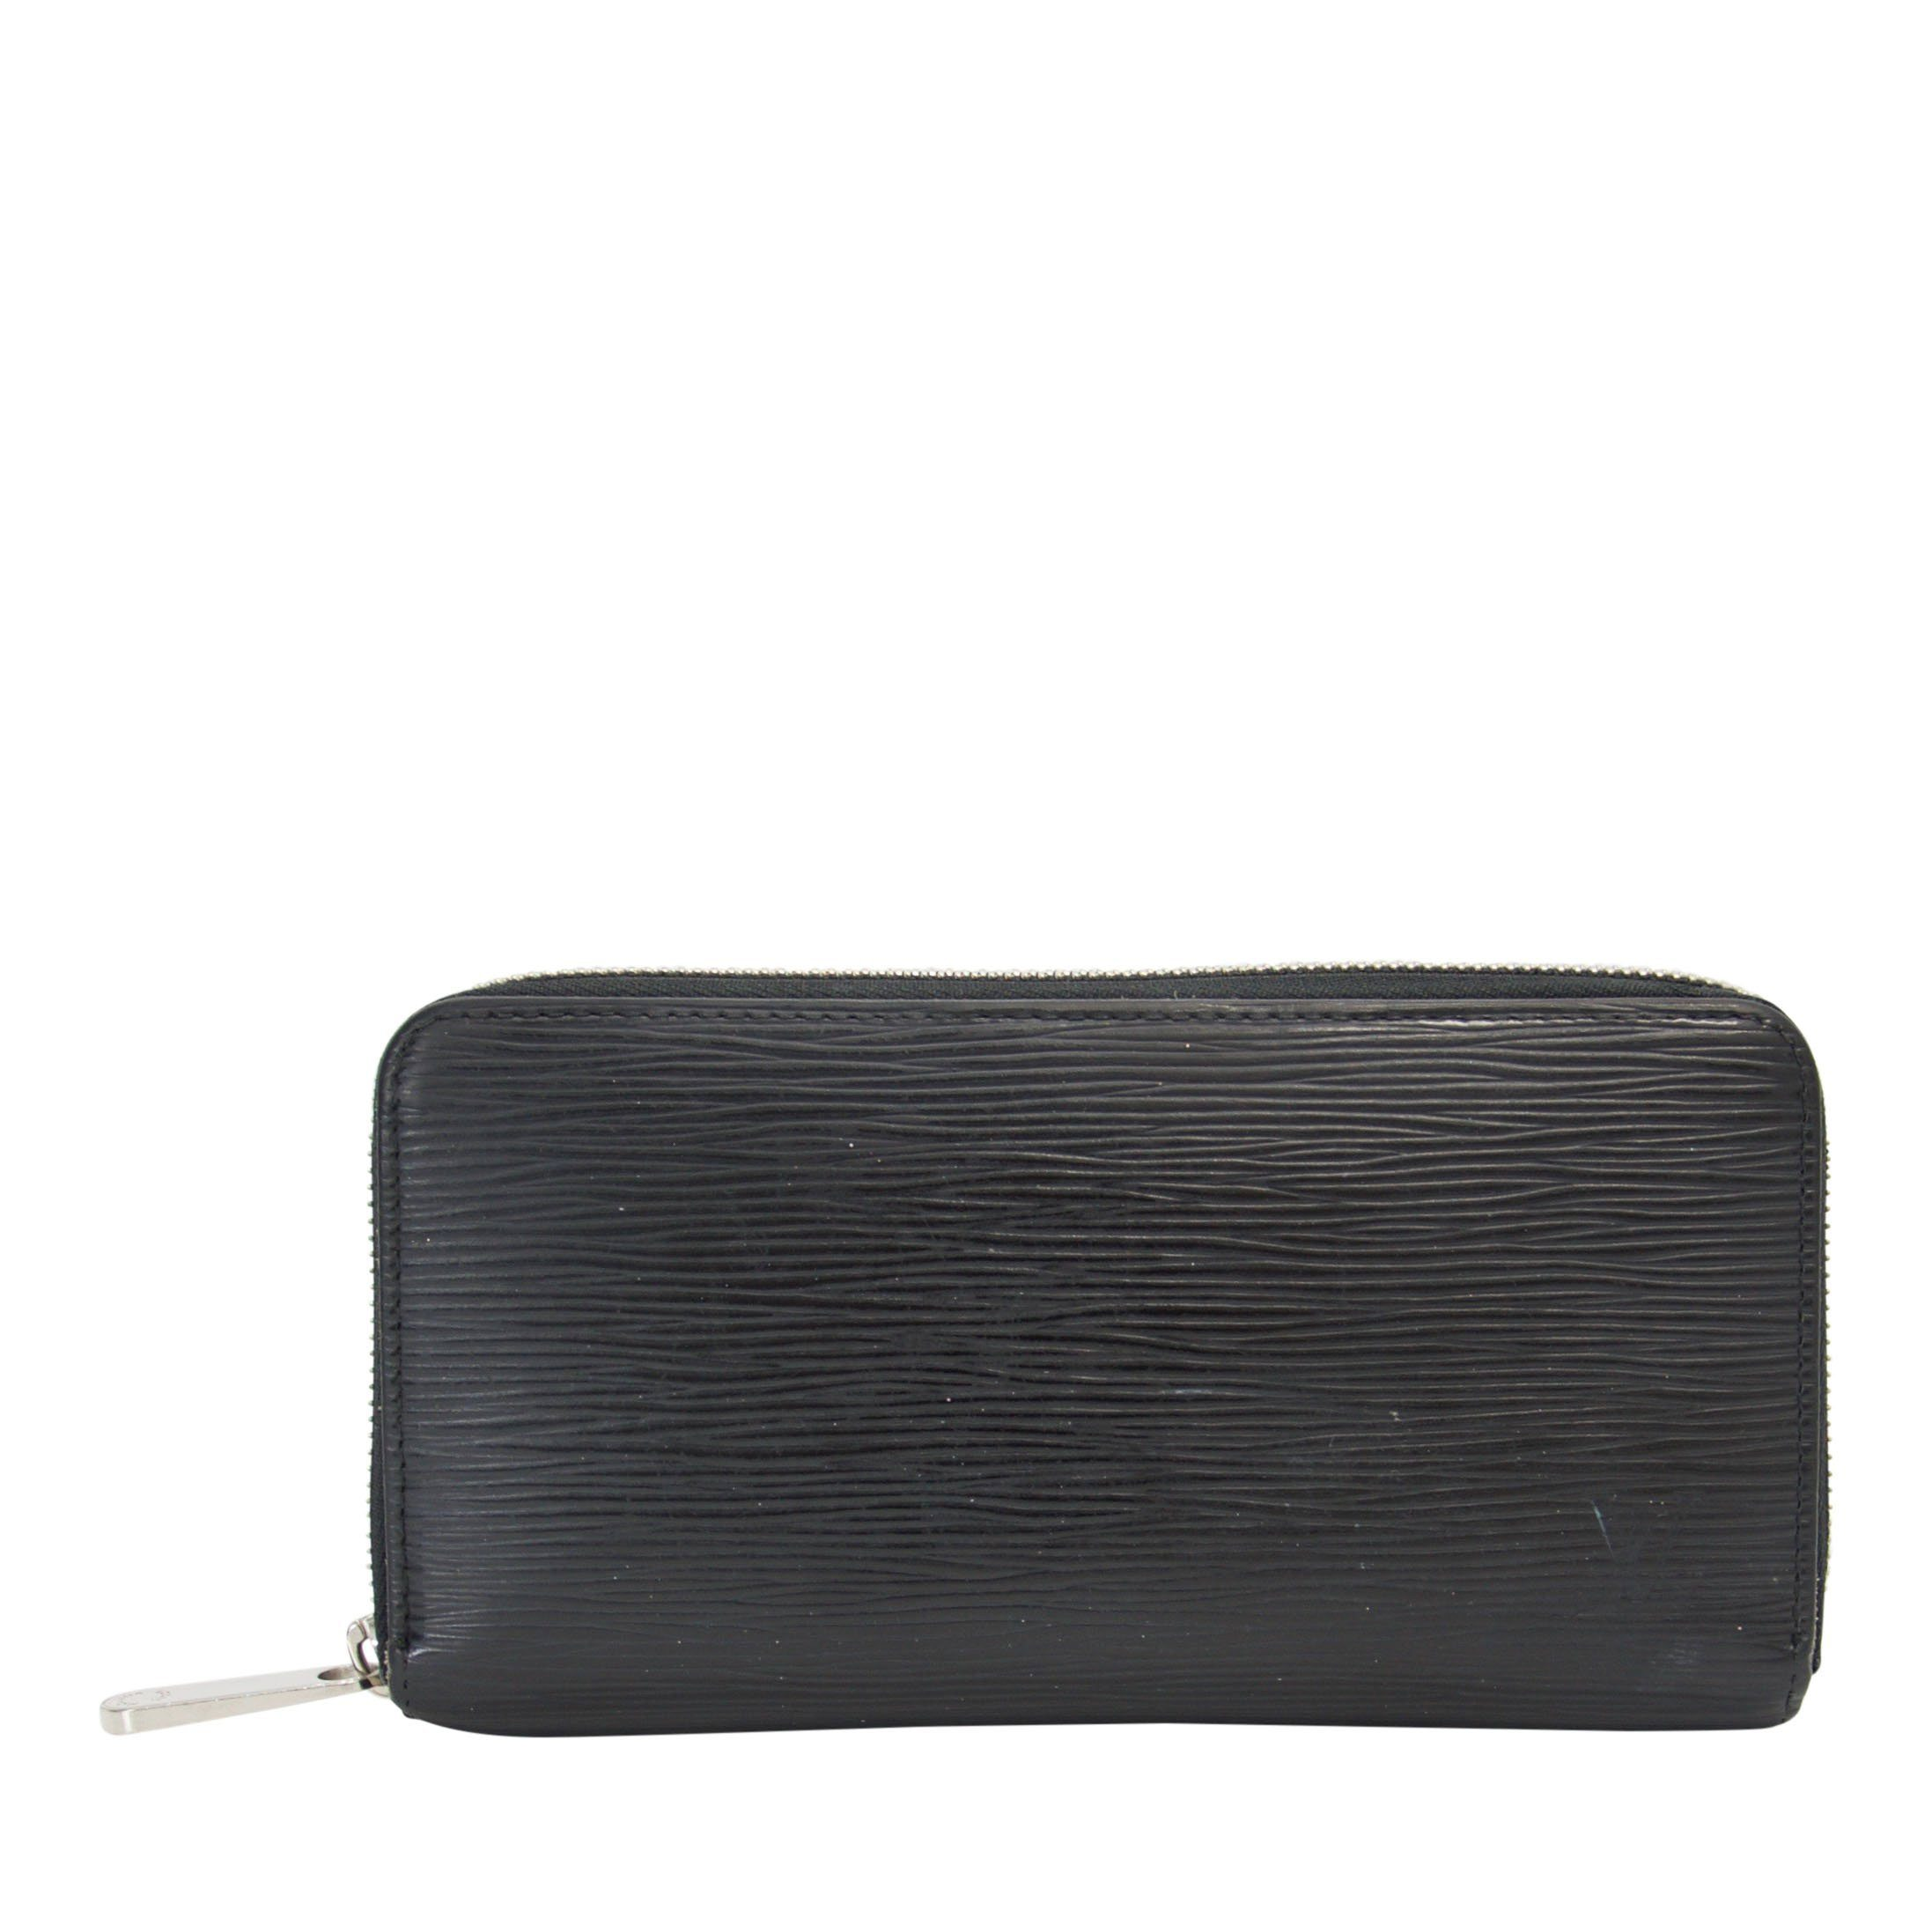 fa855915aa6d Louis Vuitton Black Epi Zippy Wallet Wallets Louis Vuitton ...